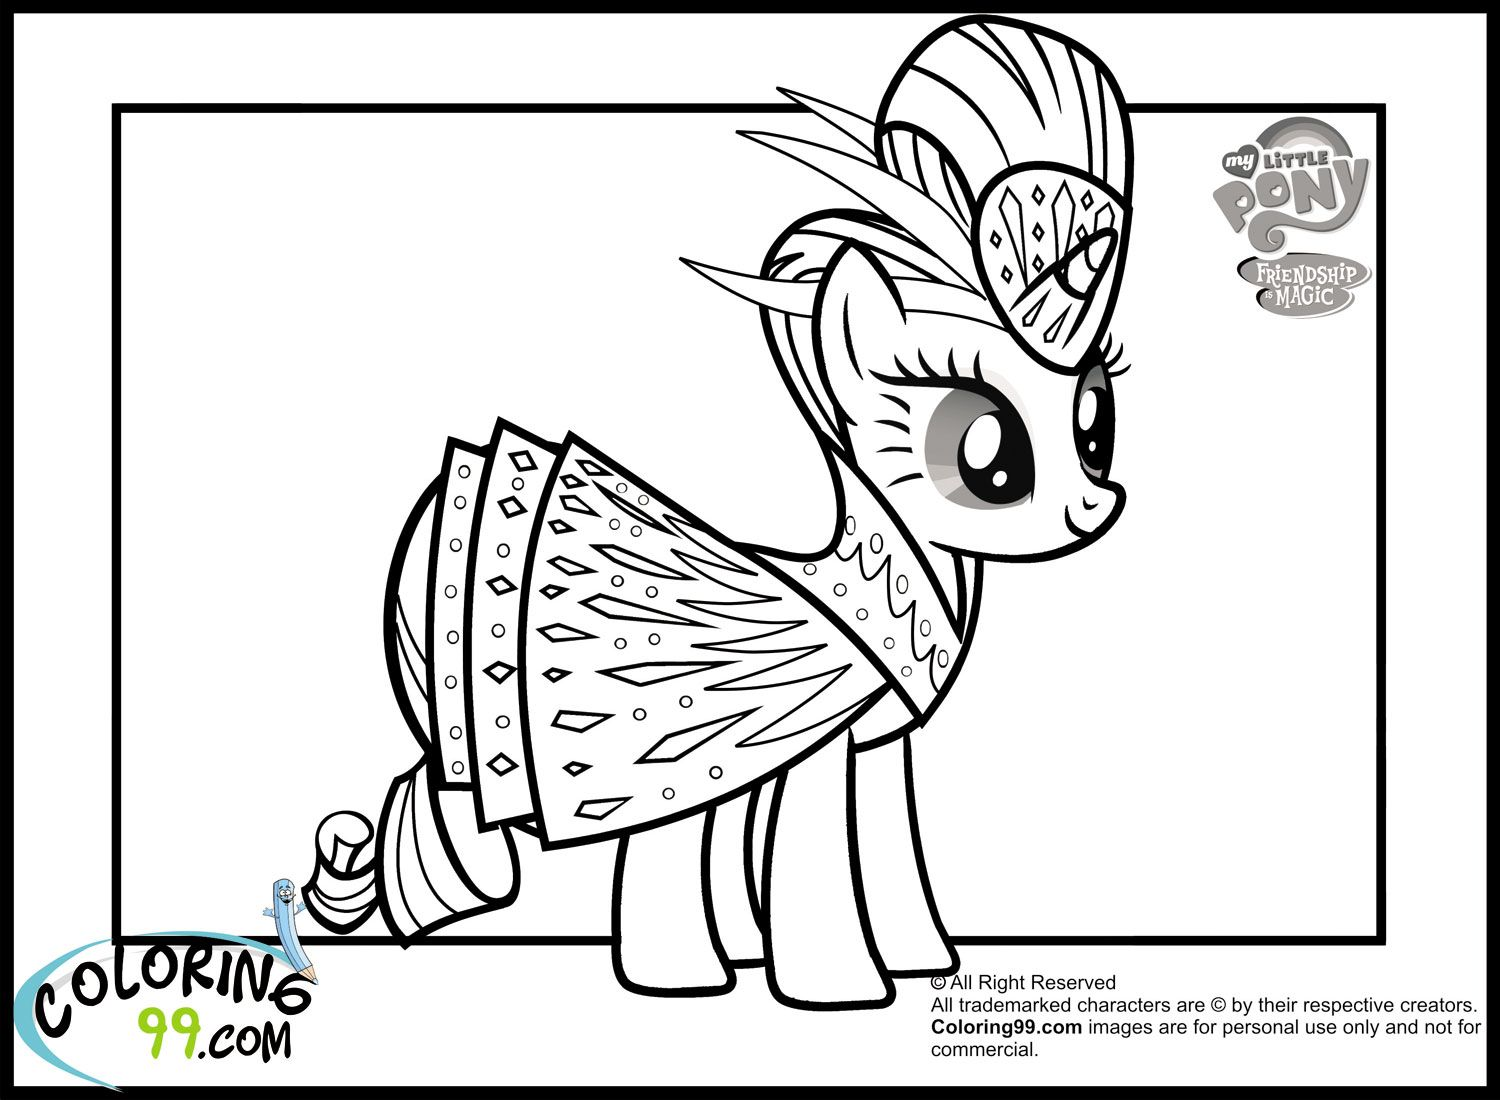 coloring 99 my little pony | My Little Pony Rarity Coloring Pages ...